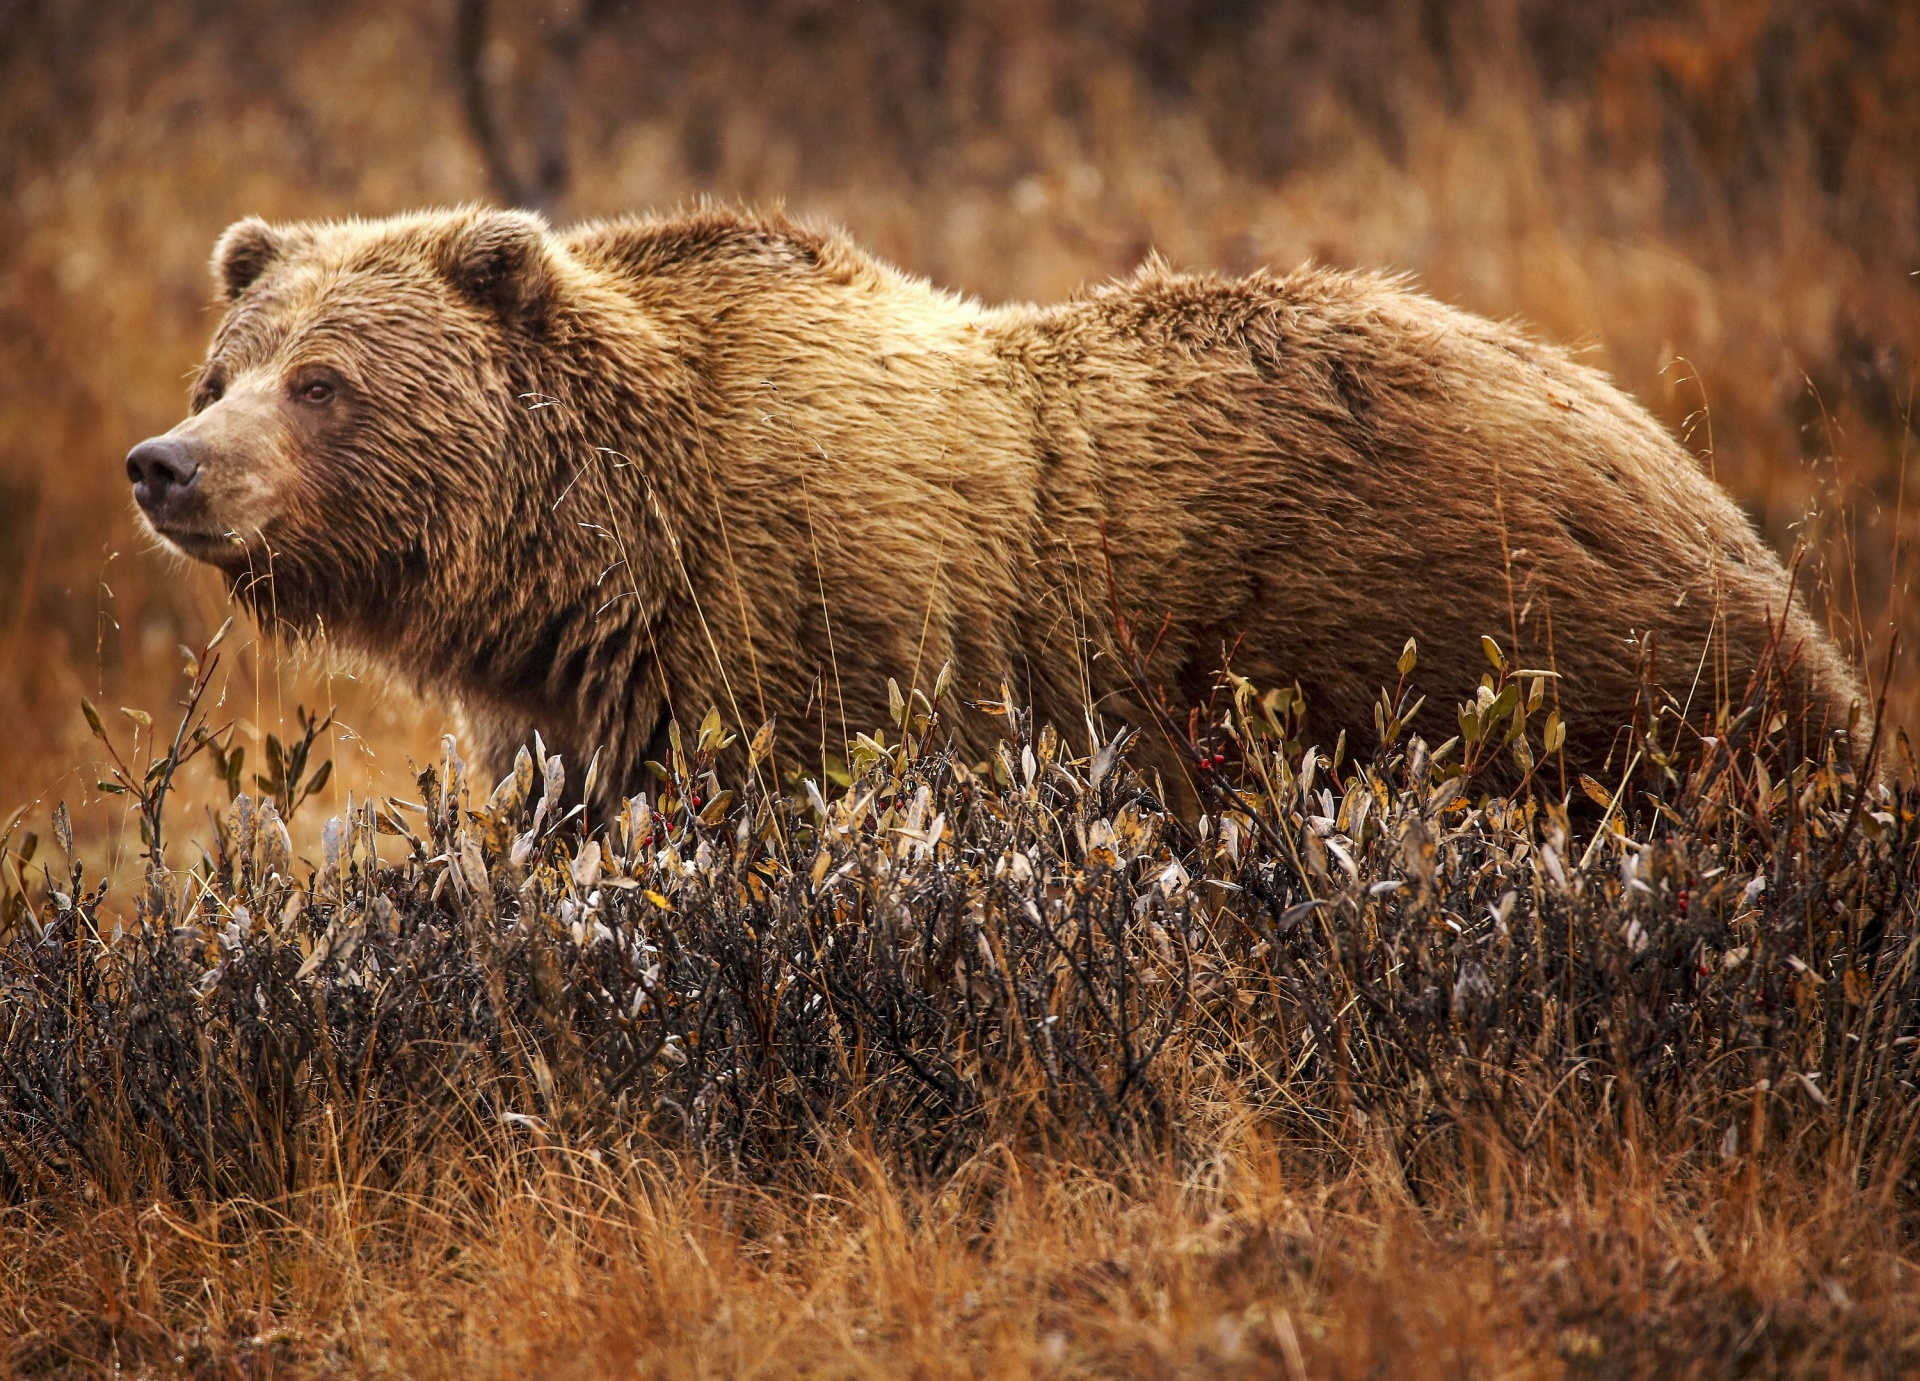 Wilson the grizzly bear.